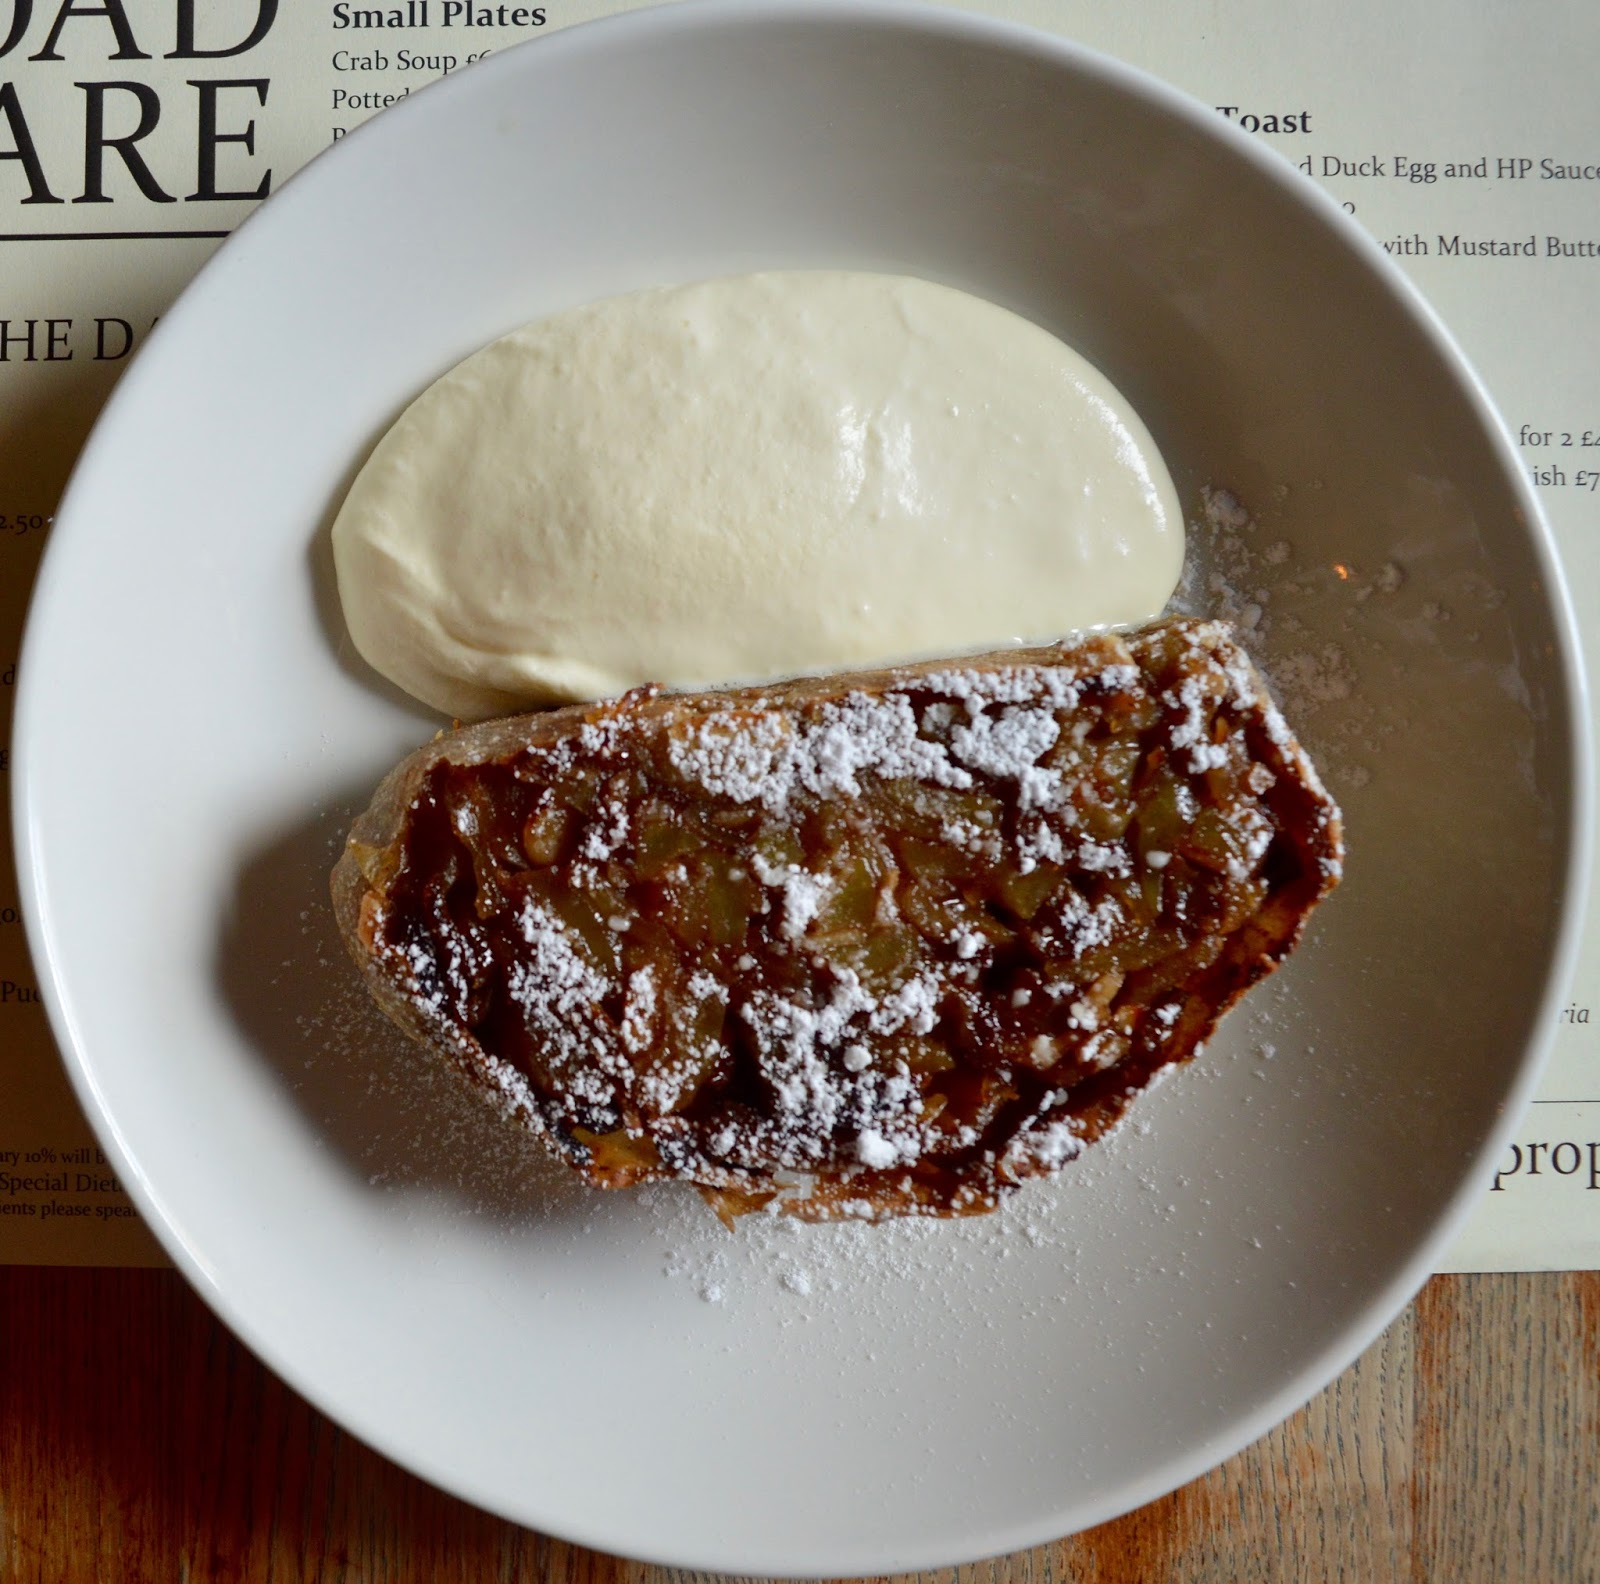 Oktoberfest 2016 | The Broad Chare Newcastle - Apple Strudel and Cream